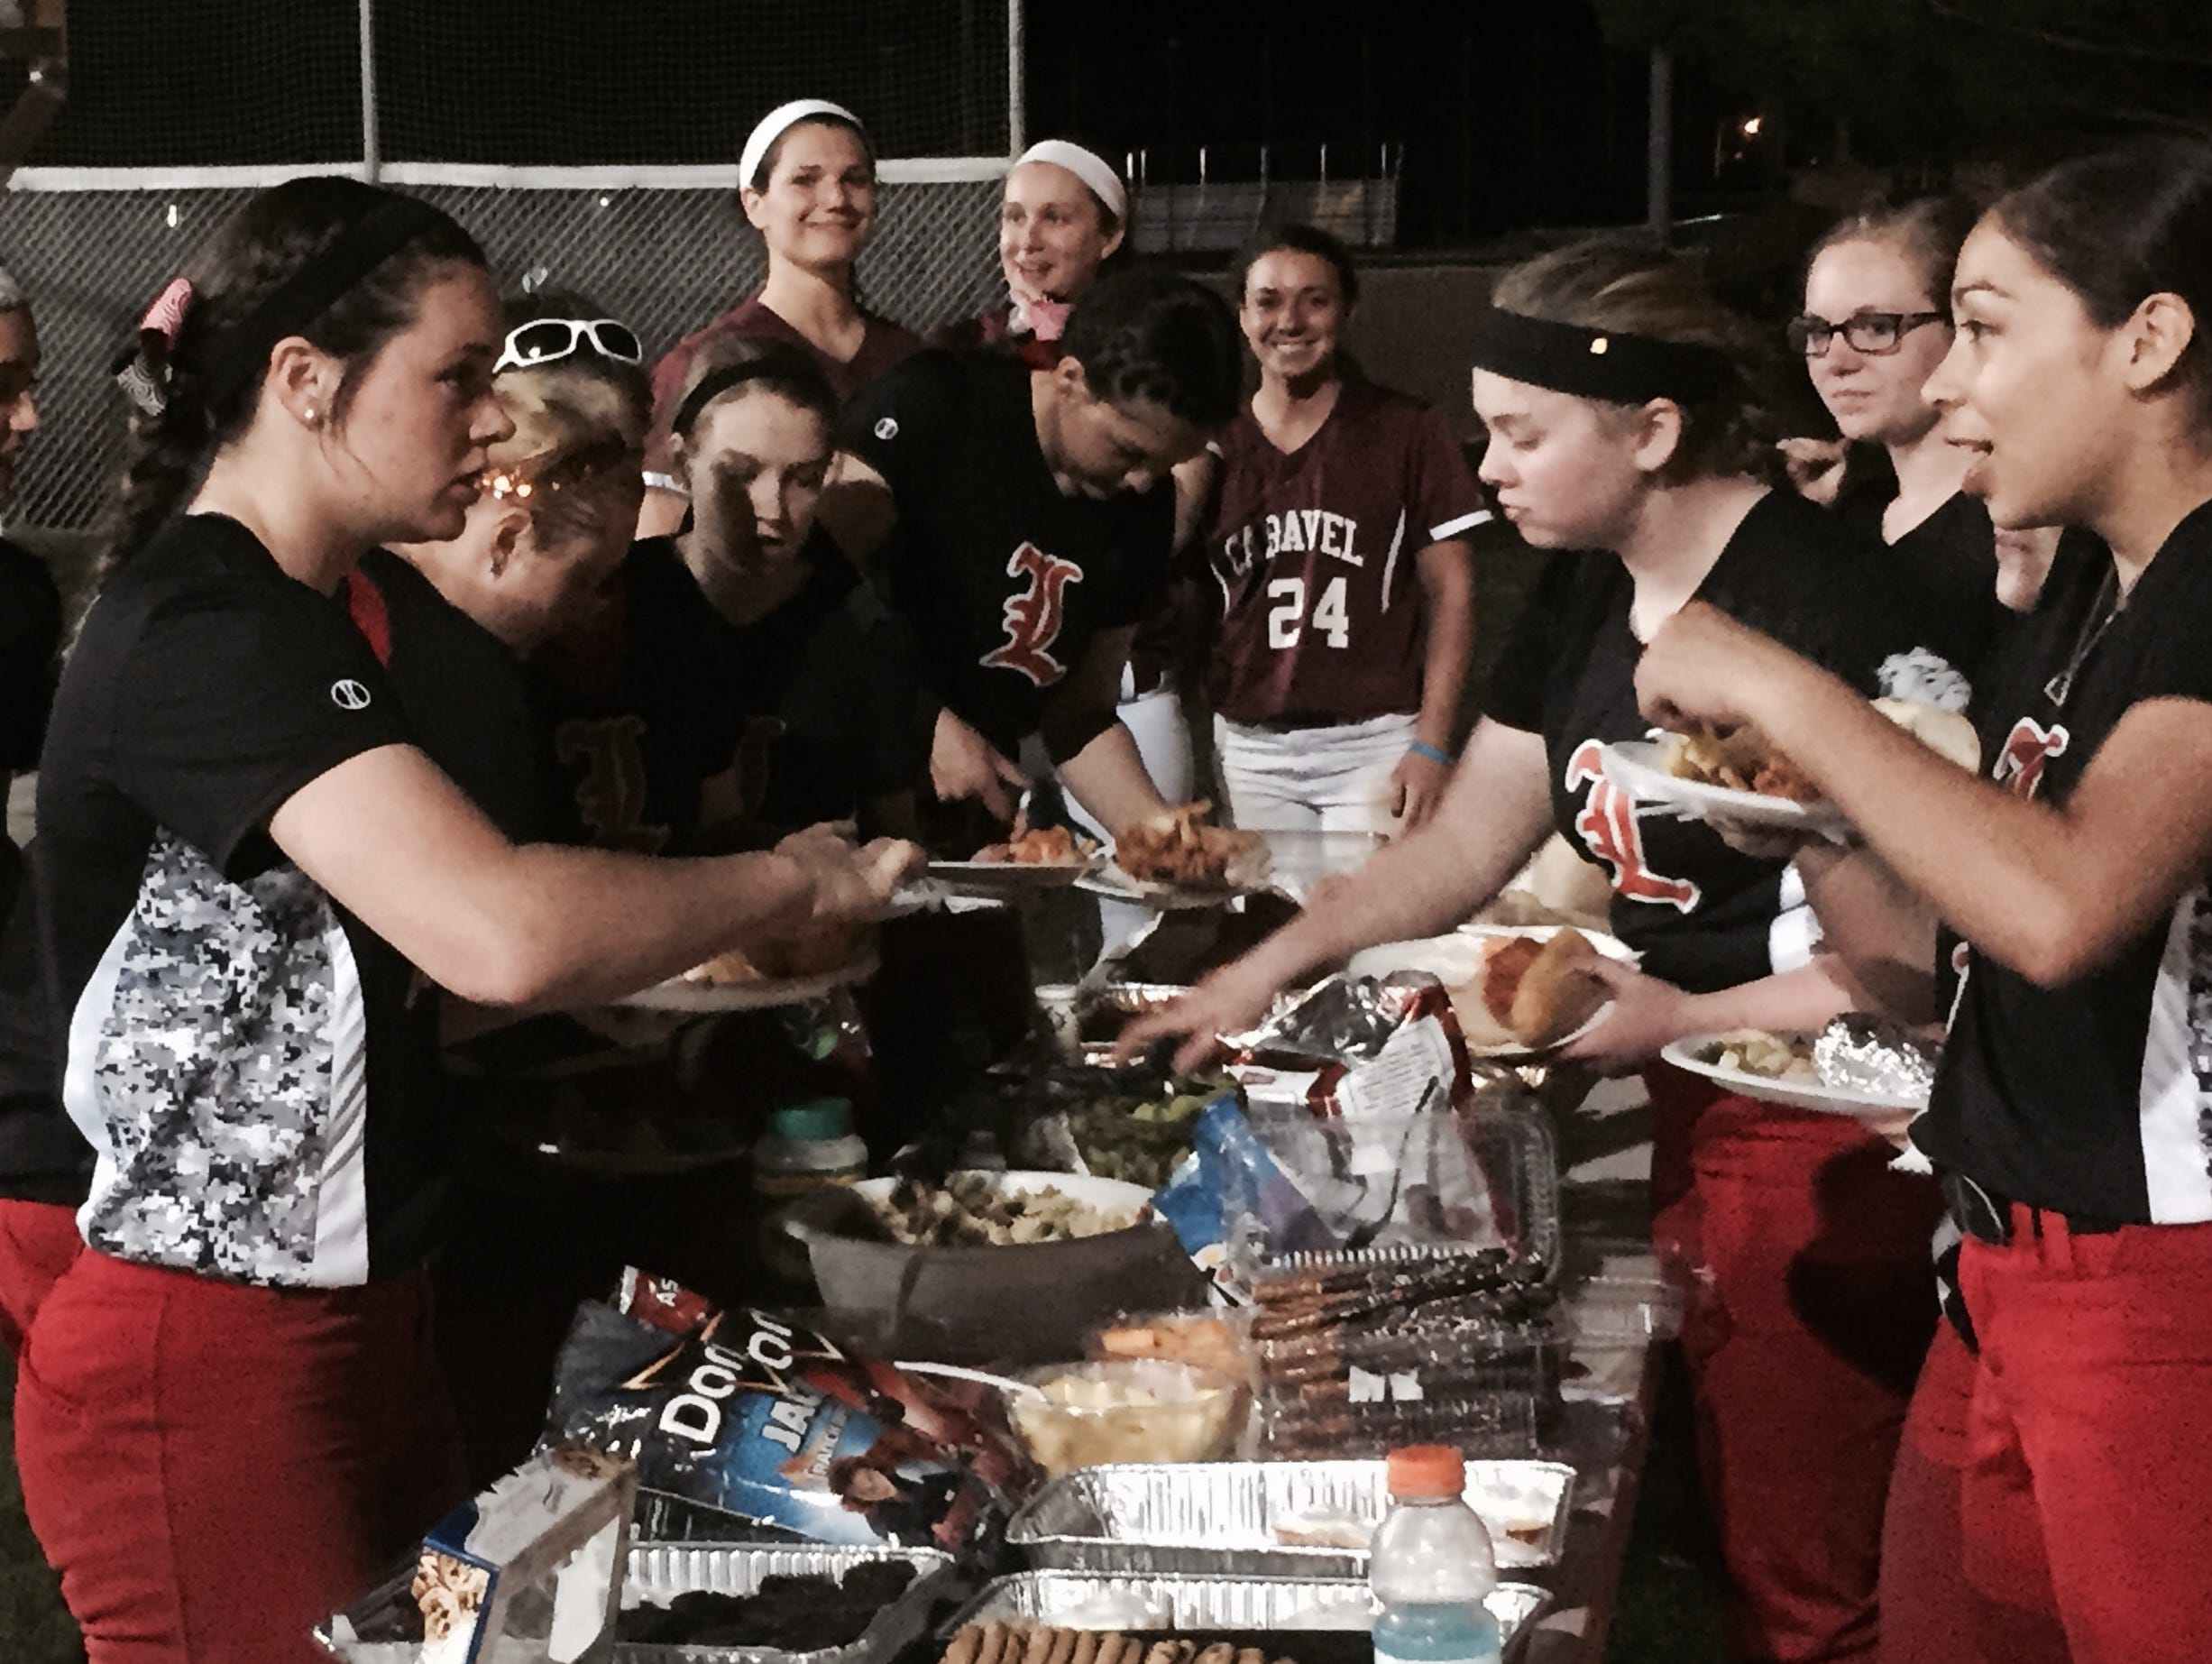 Laurel and Caravel players enjoy a postgame cookout at Caravel following Laurel's 1-0 softball victory on Friday night.